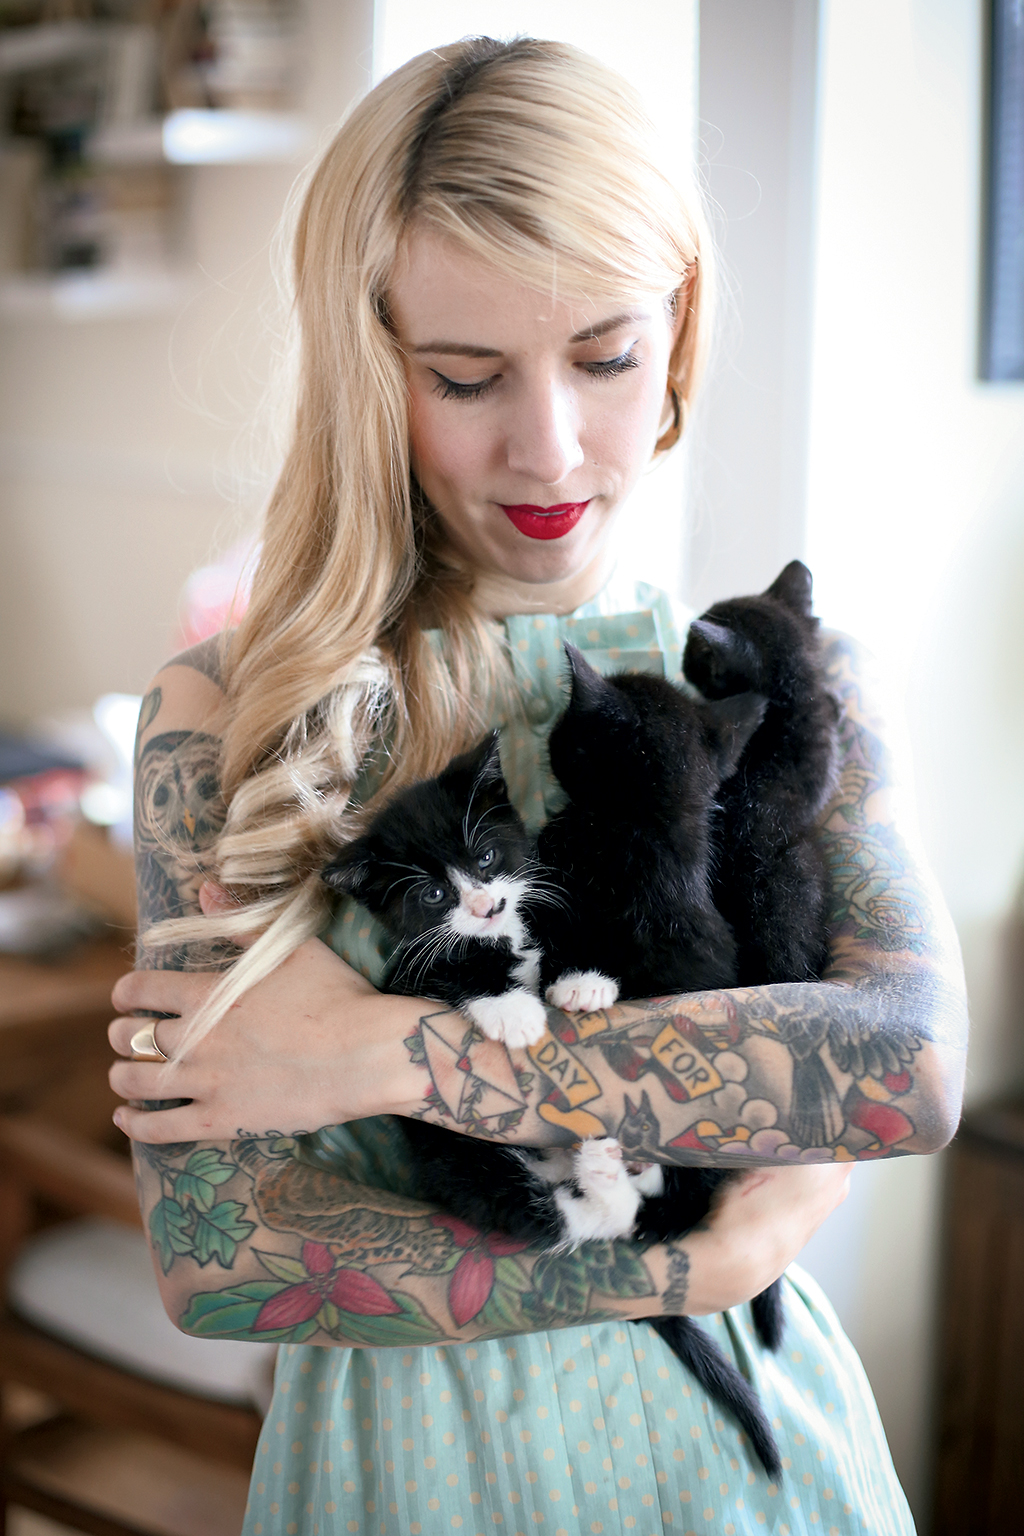 The Kitten Lady: On Instagram–where she has more than 100,000 followers–Shaw is @kittenxlady.